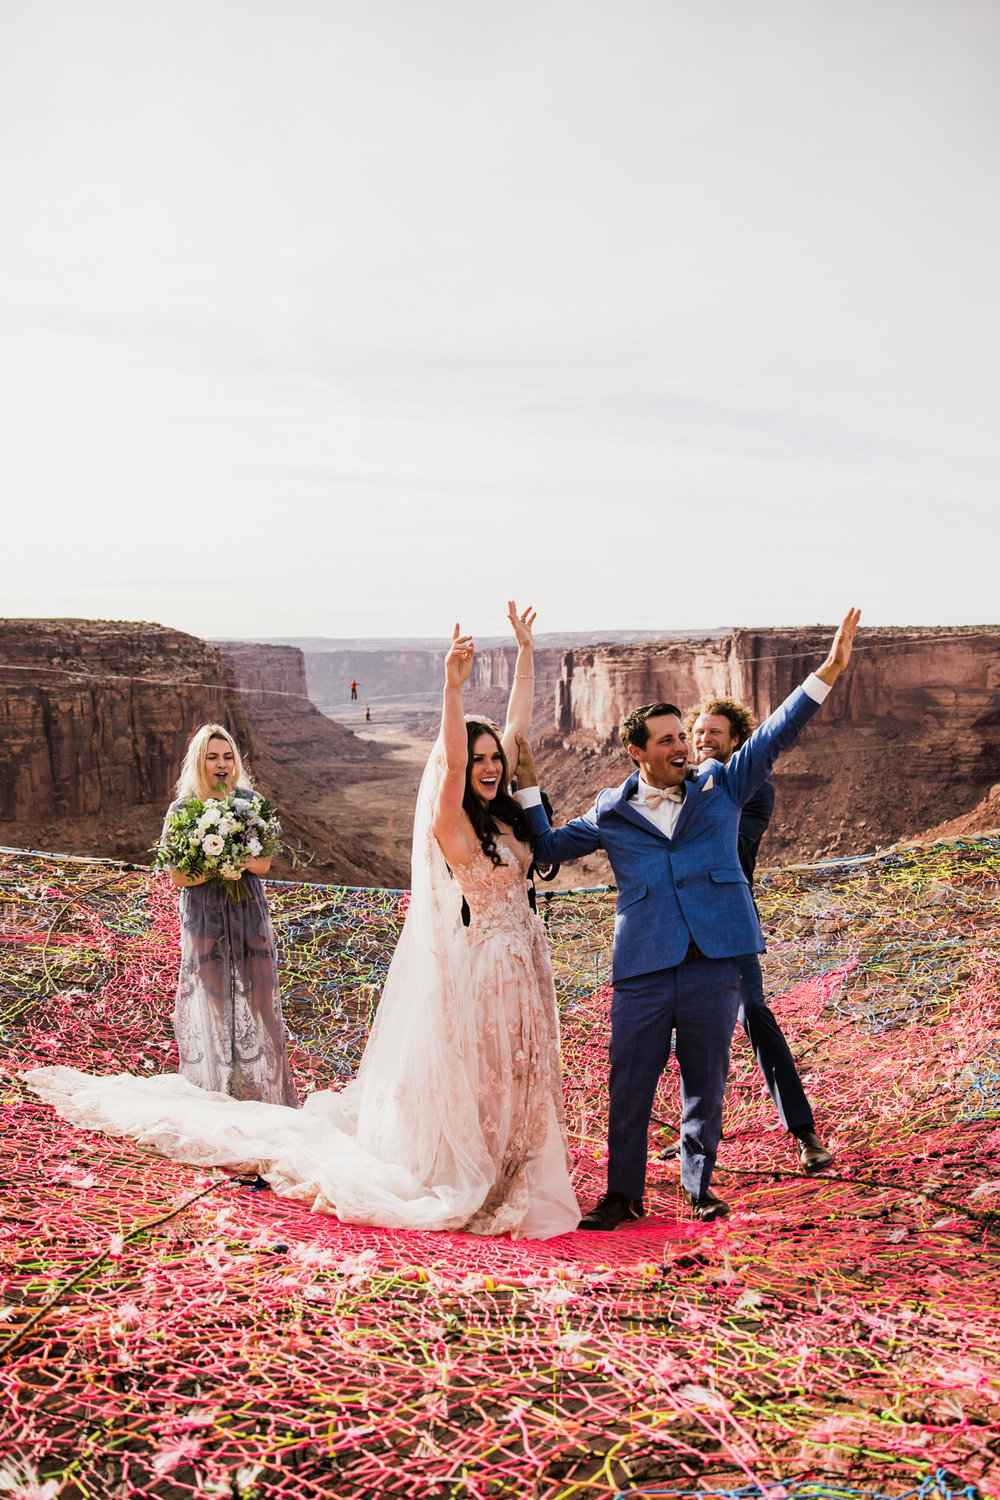 moab, utah spacenet wedding over a canyon | destination adventure wedding photographers | the hearnes adventure photography | www.thehearnes.com